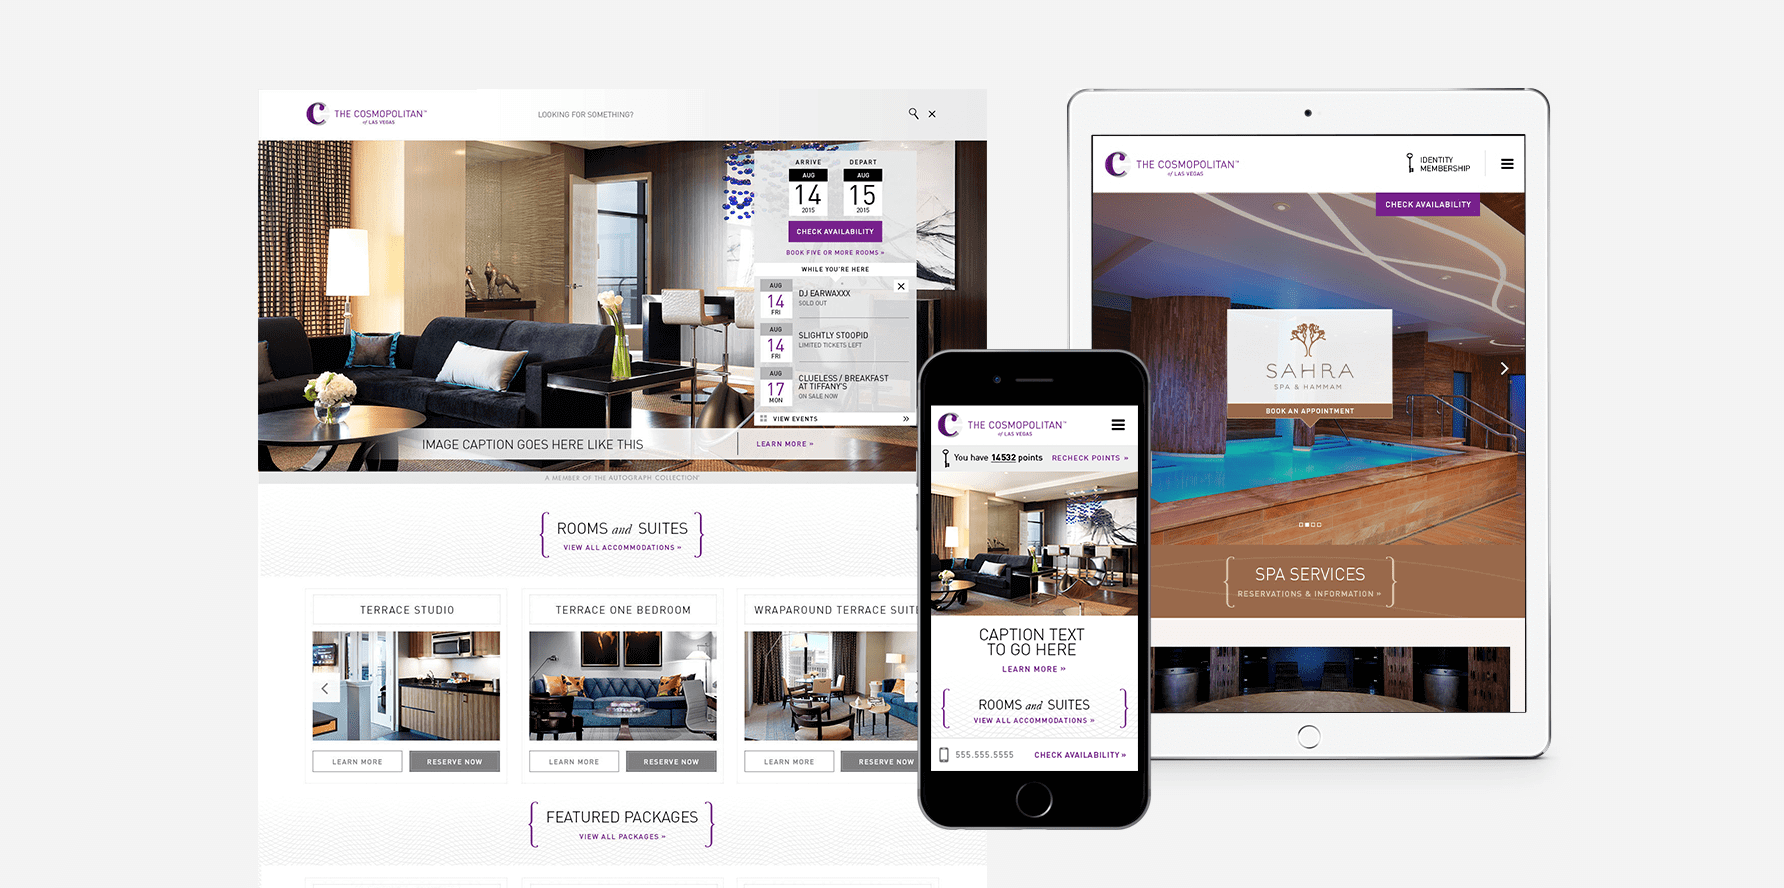 The Cosmopolitan of Las Vegas Website Design 1